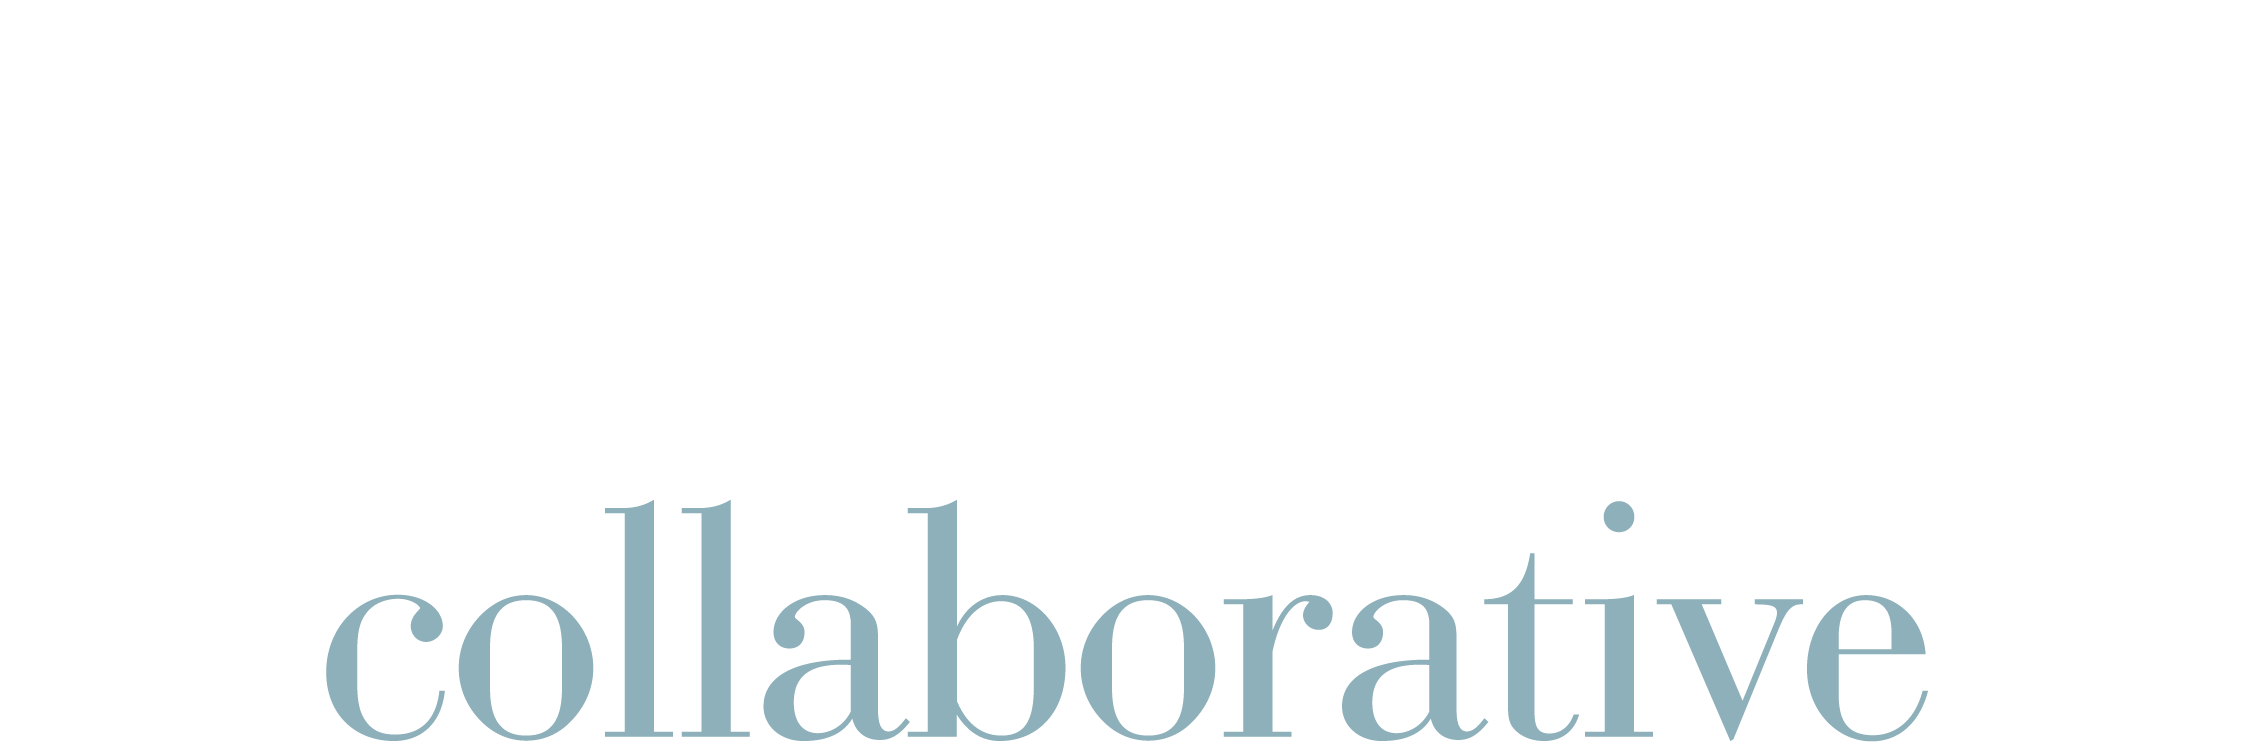 KidsFirstCollaborative_HalfWhite-HalfColor.png